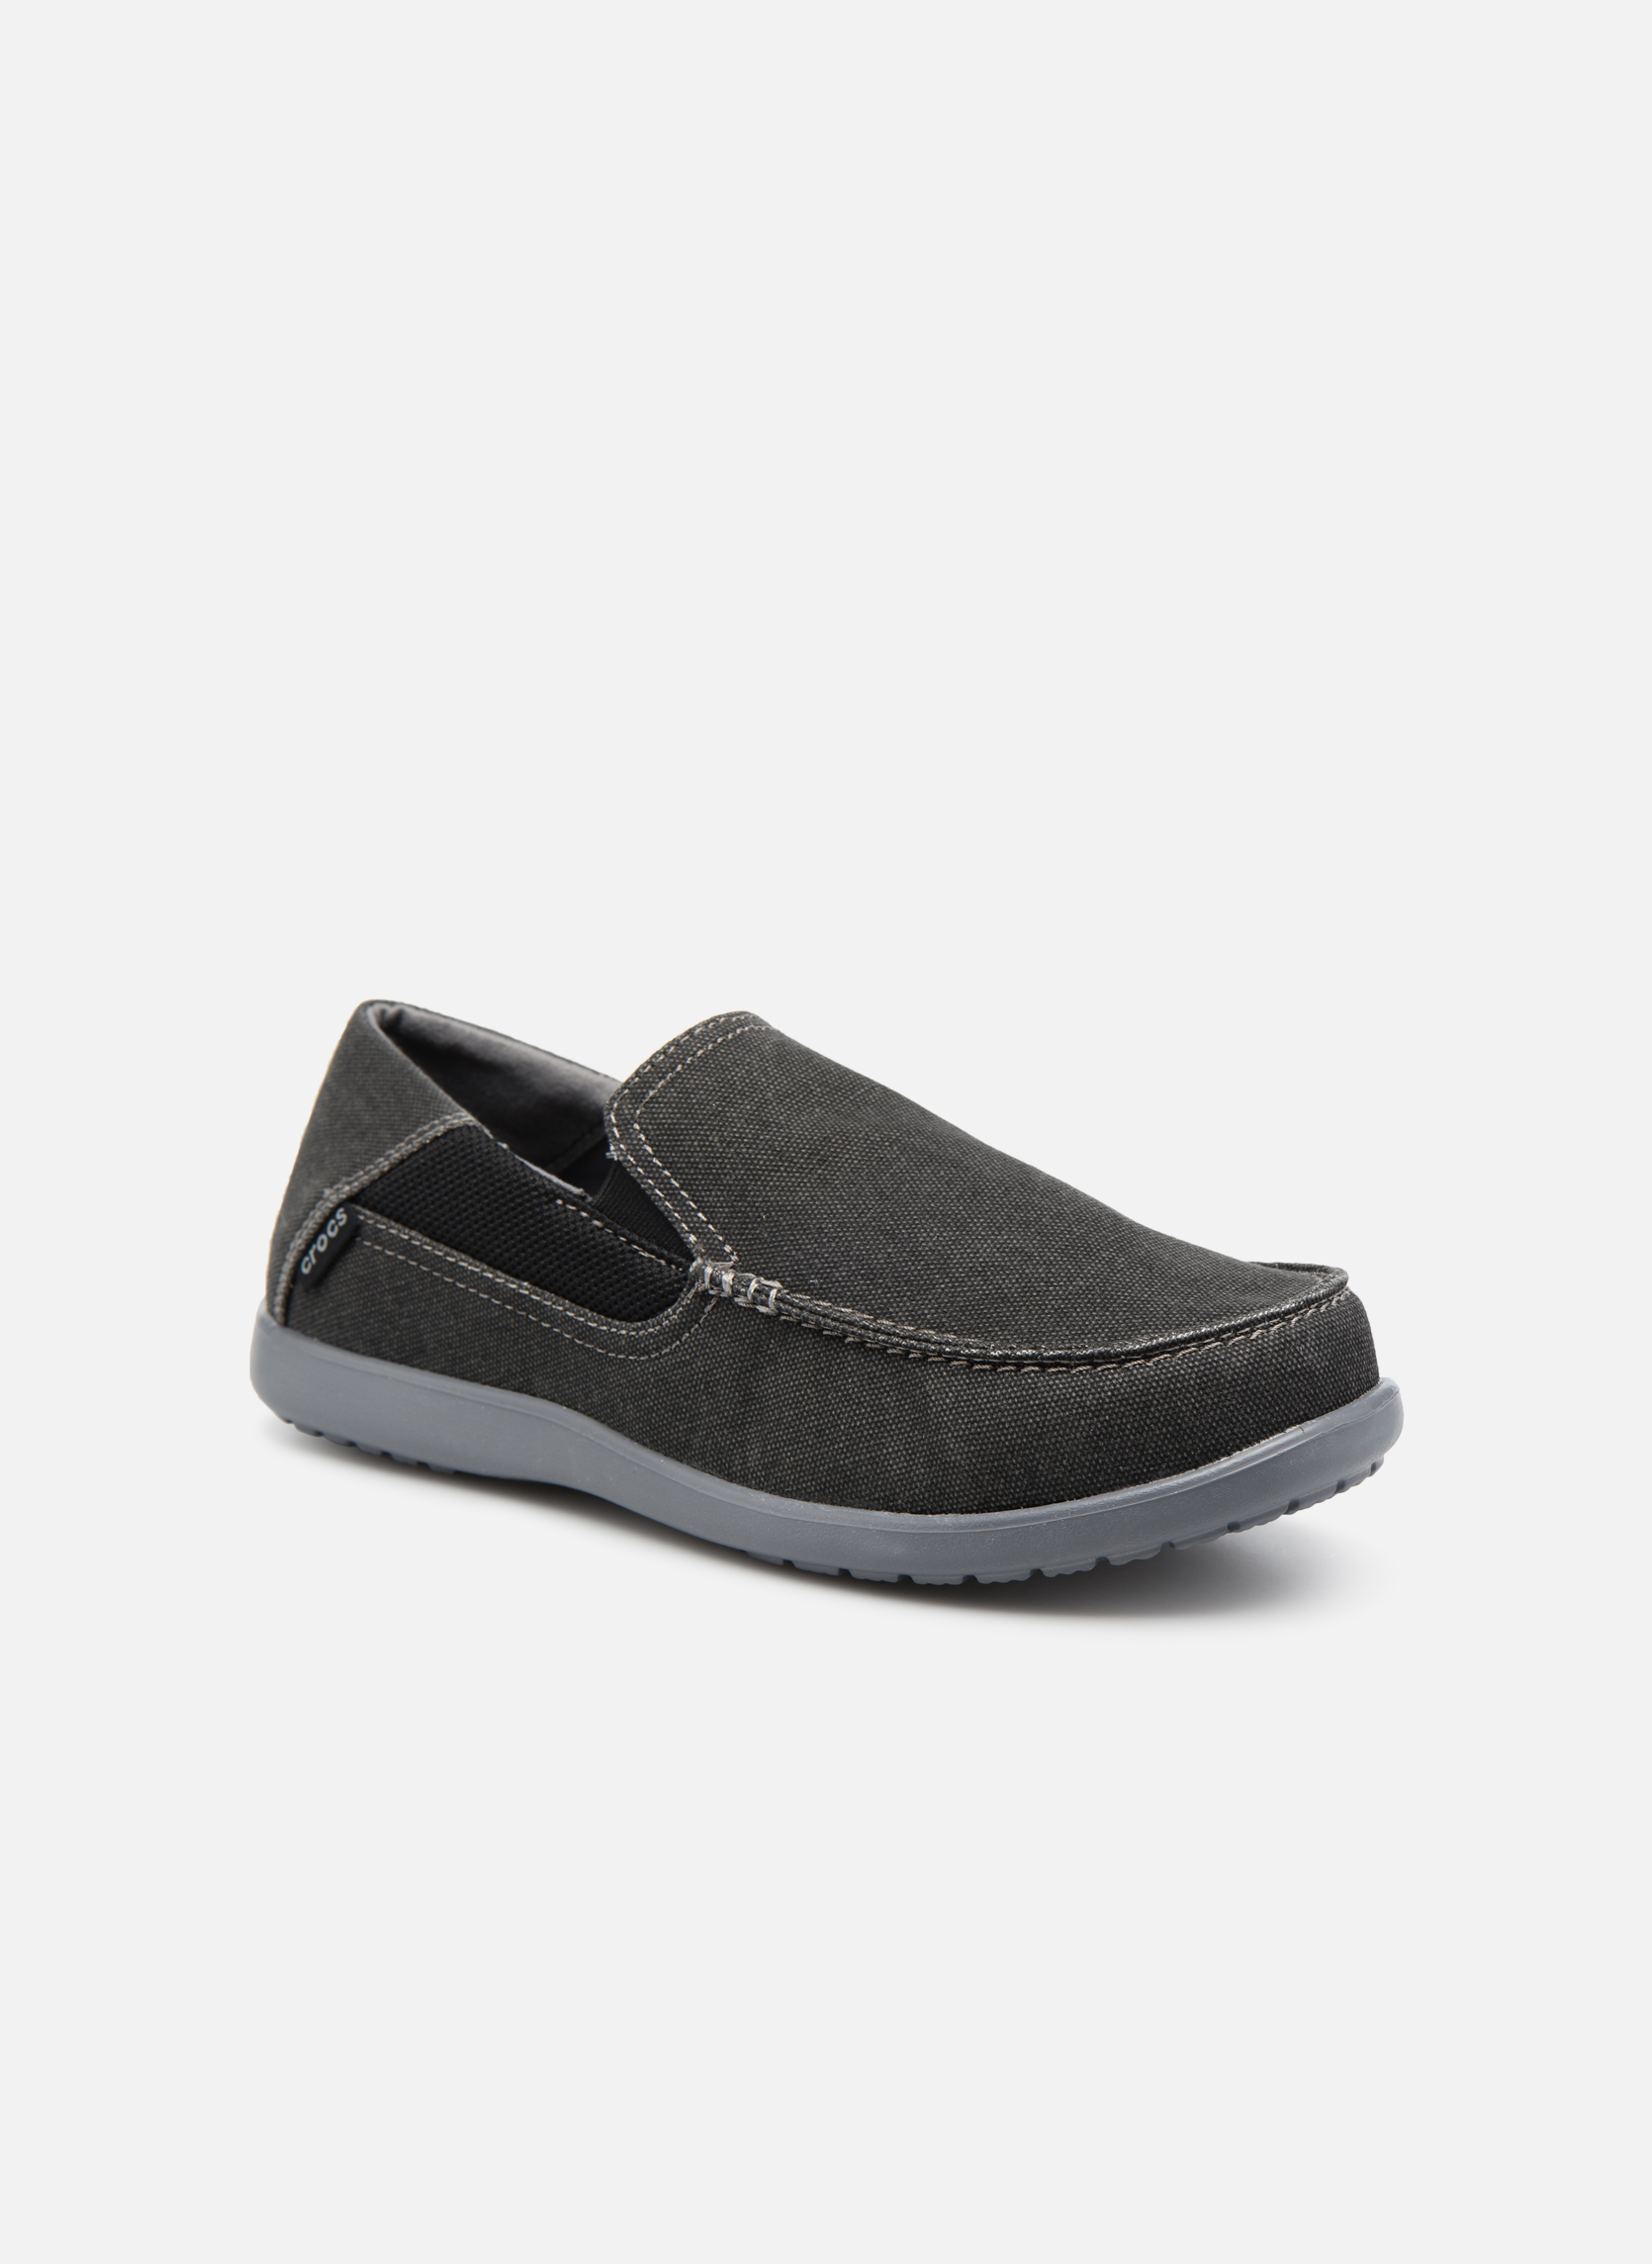 Sneakers Santa Cruz 2 Luxe M by Crocs